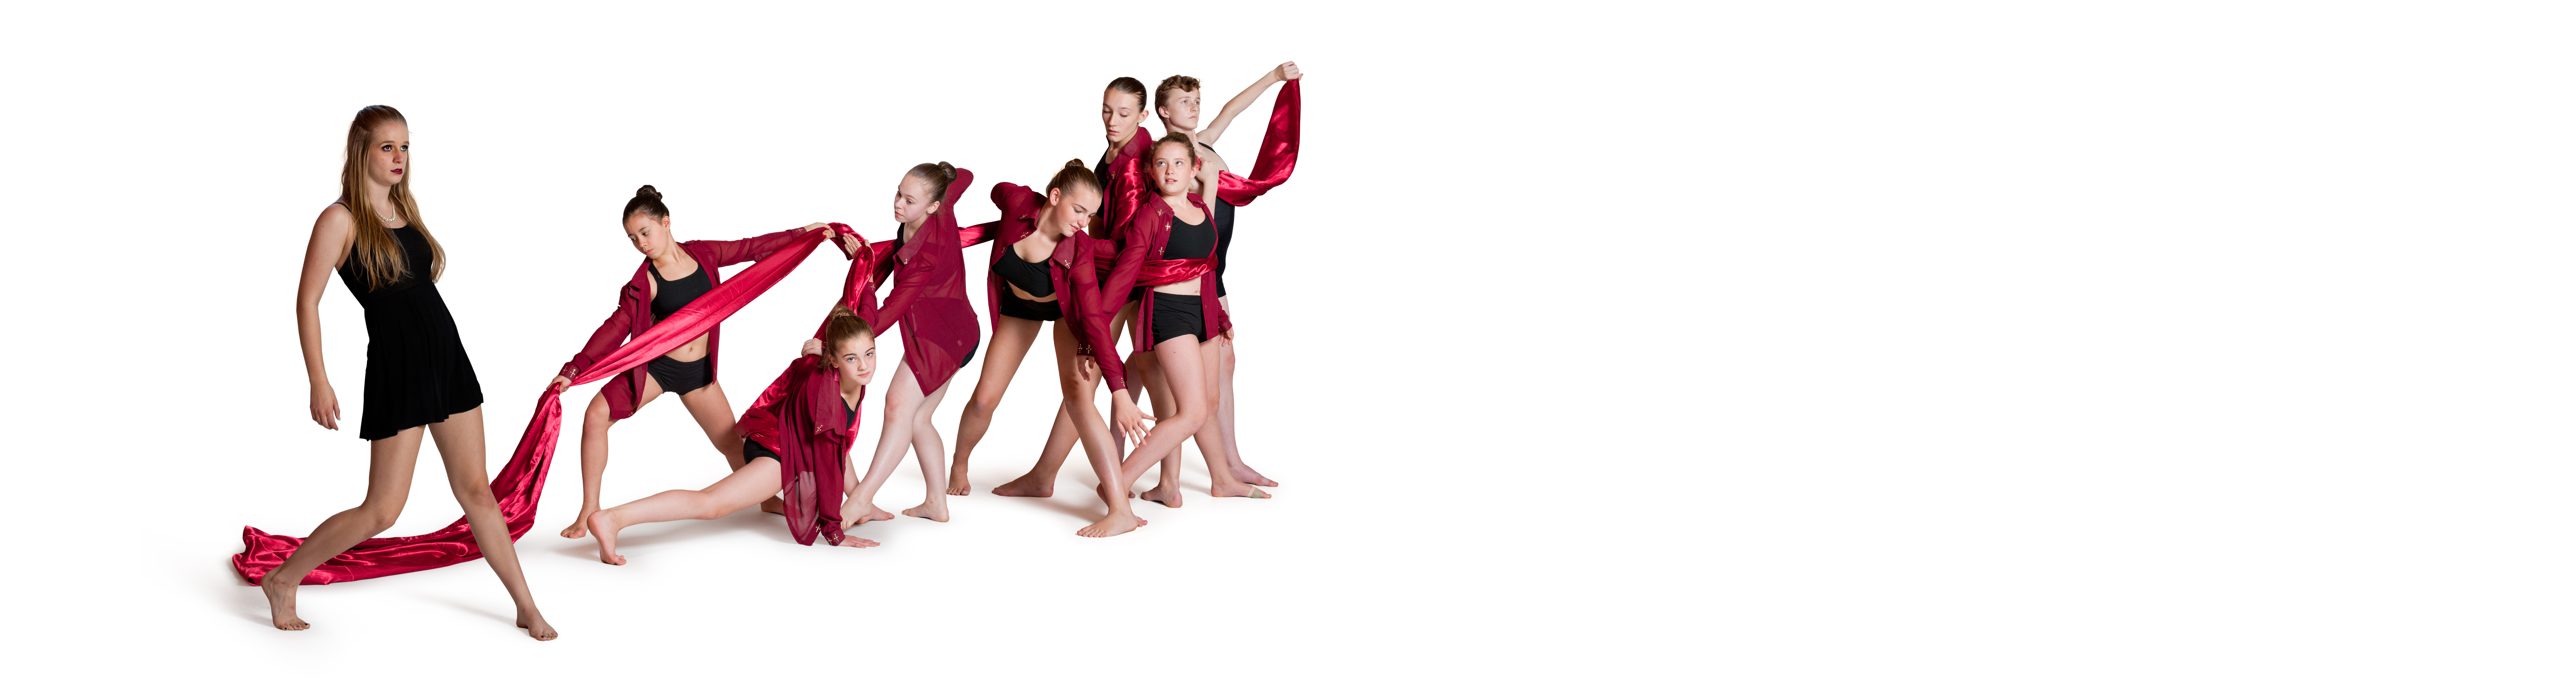 Gymnastics Stalder Academy Of Dance And The Performing